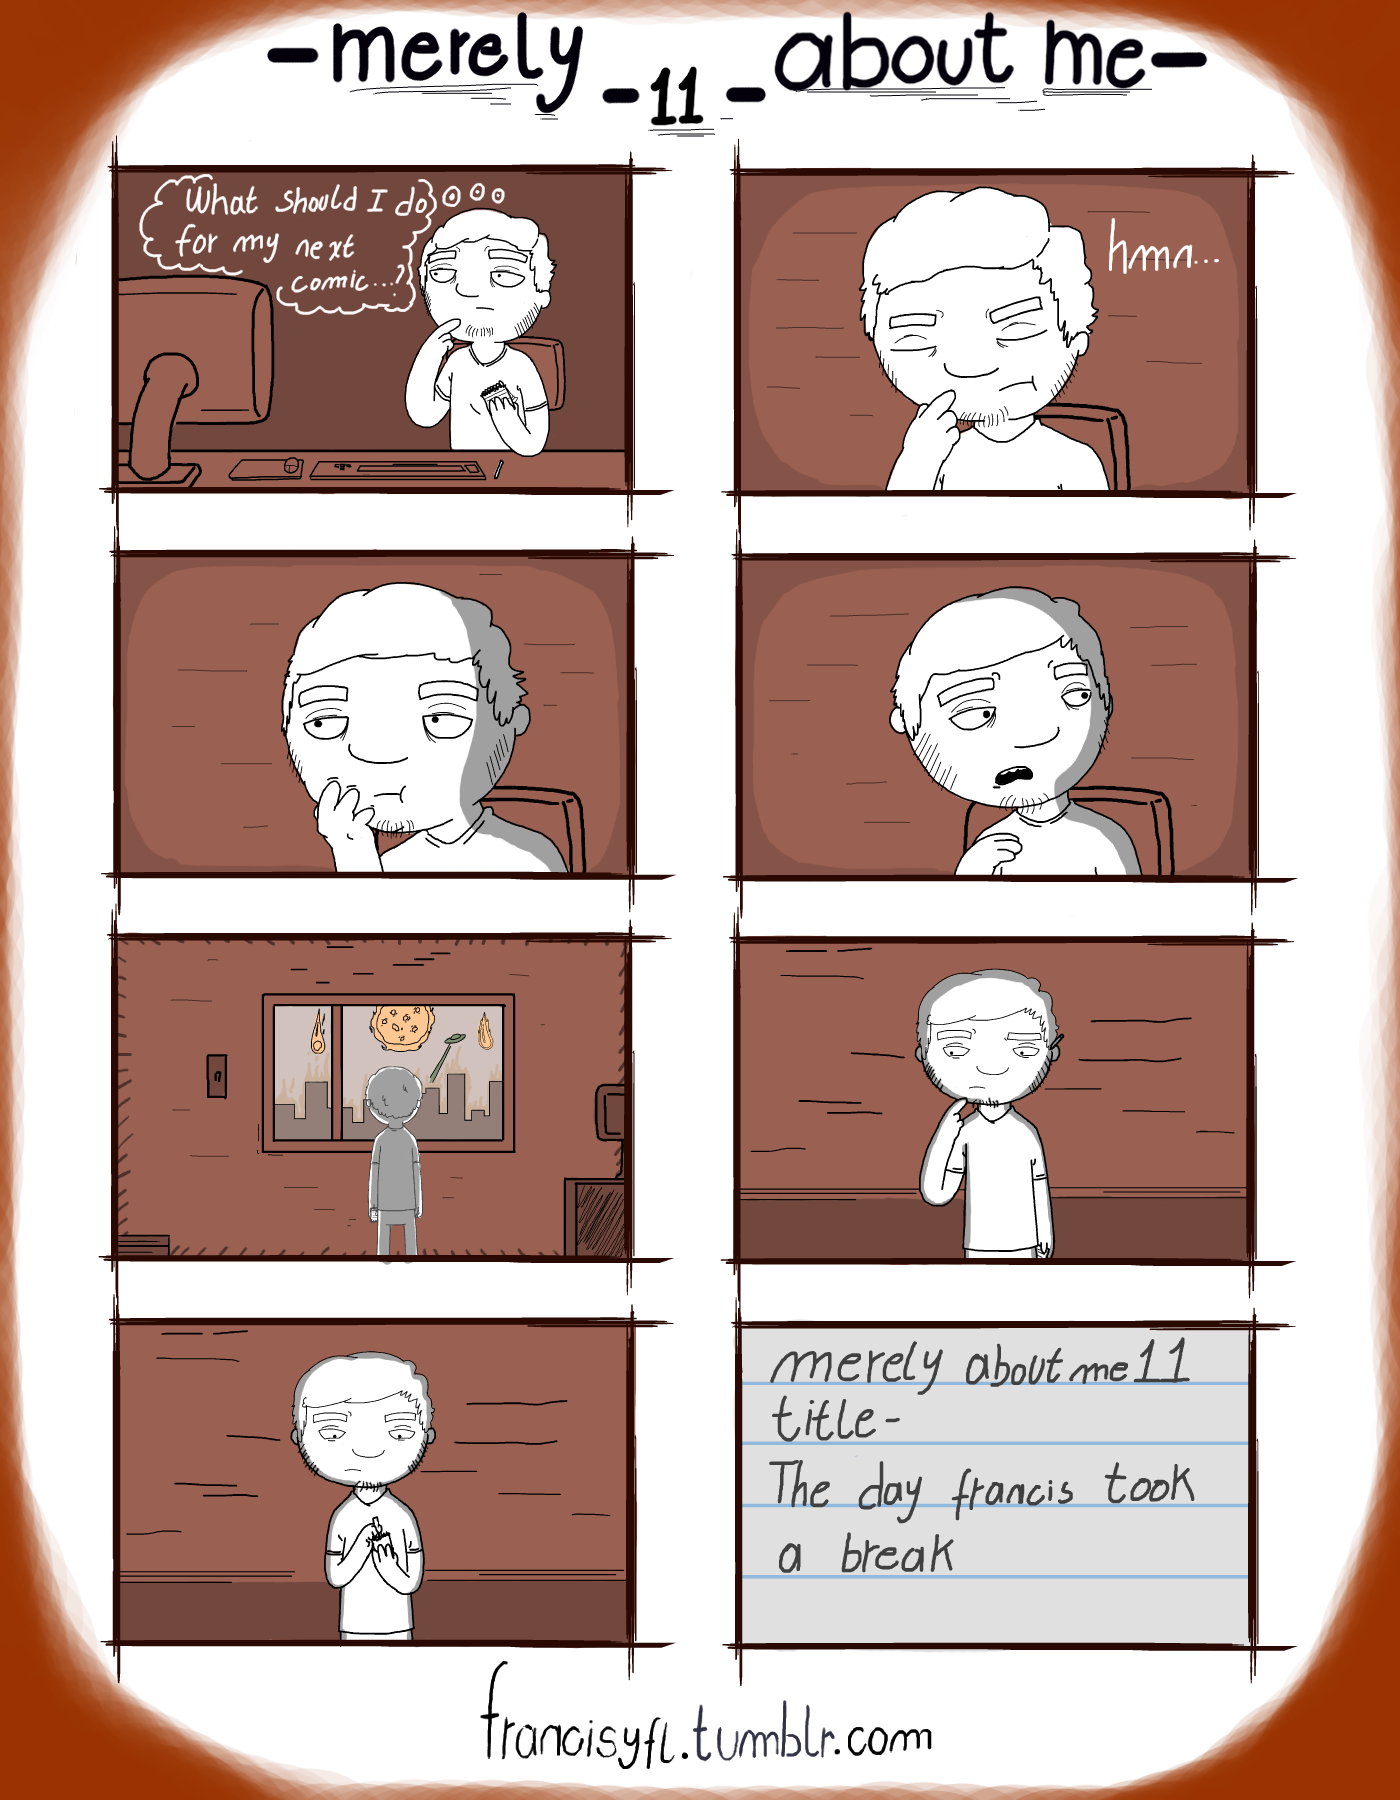 [Comic] Merely about me - 11